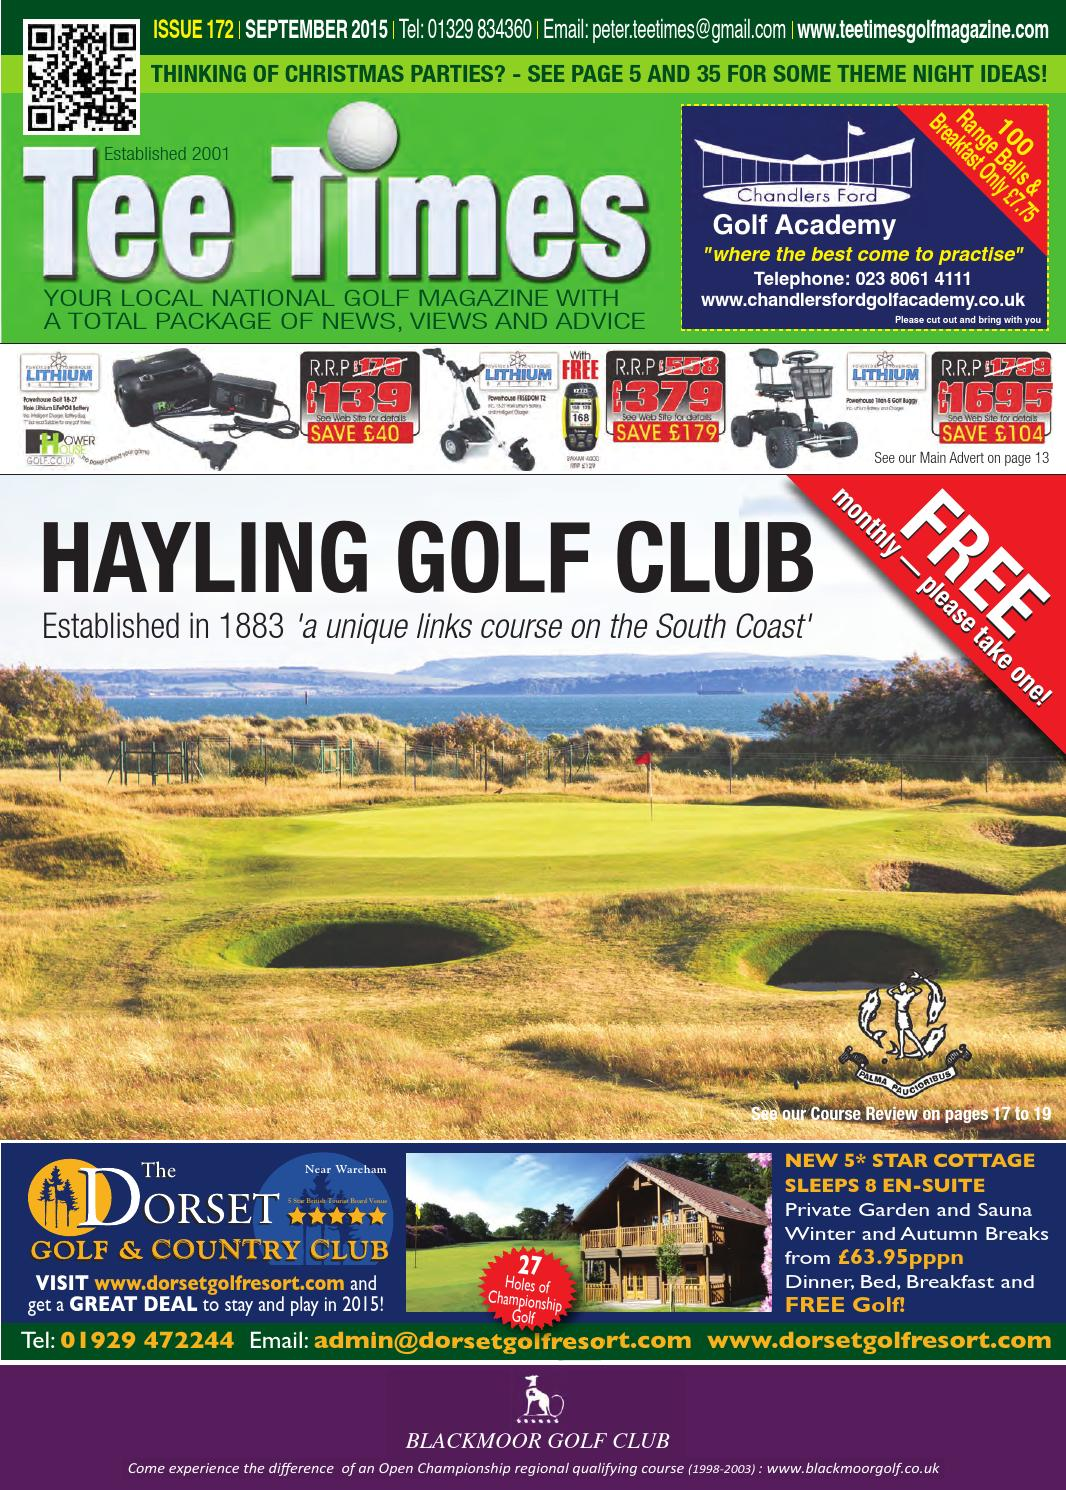 Tee Times Golf Magazine September 2015 By Tee Times Golf Magazines Issuu